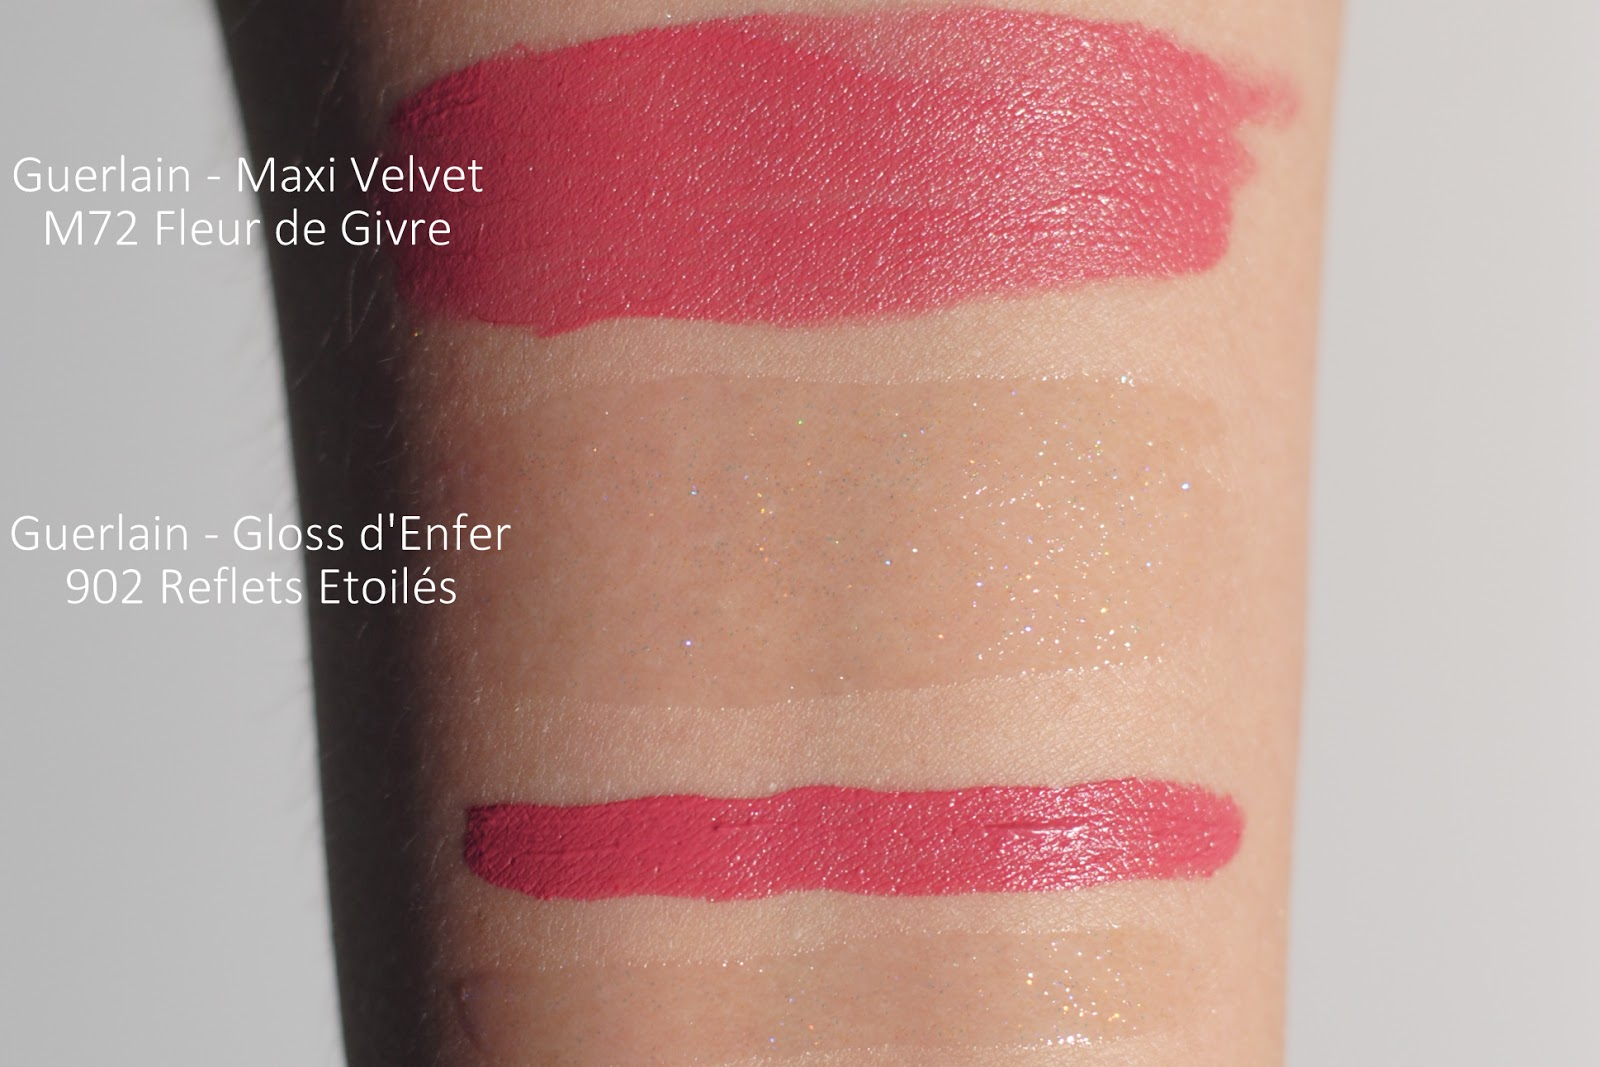 guerlain neiges merveilles review gloss d'enfer maxi velvet swatches